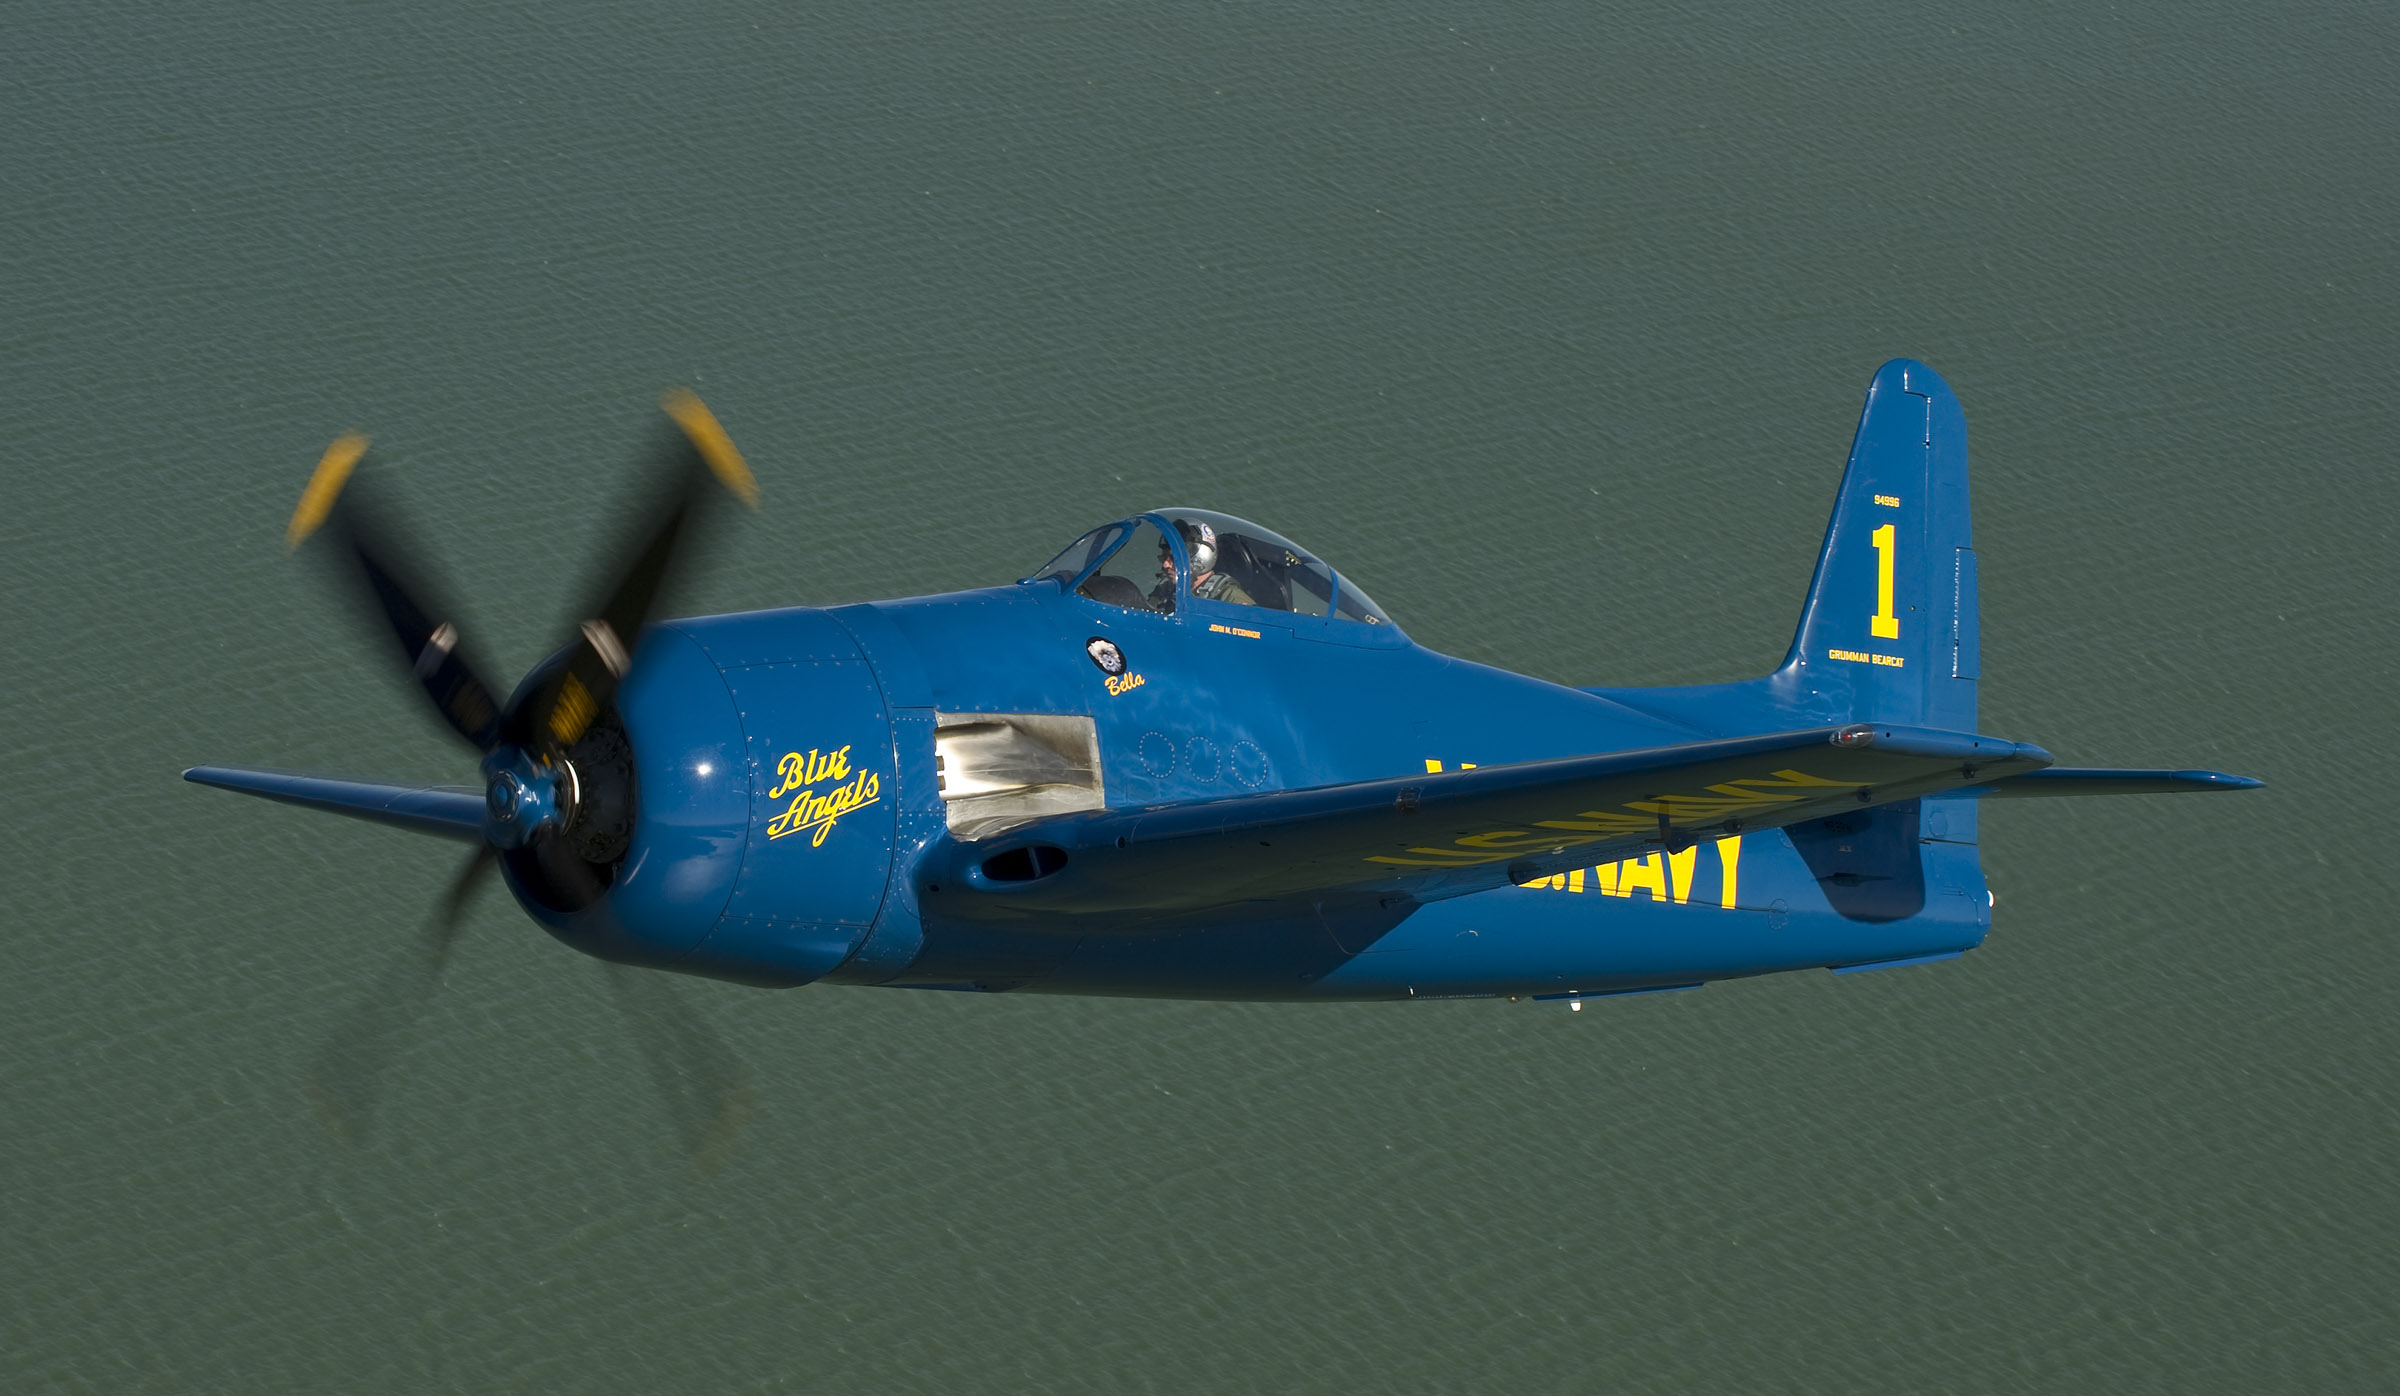 Bearcat-blue-angels